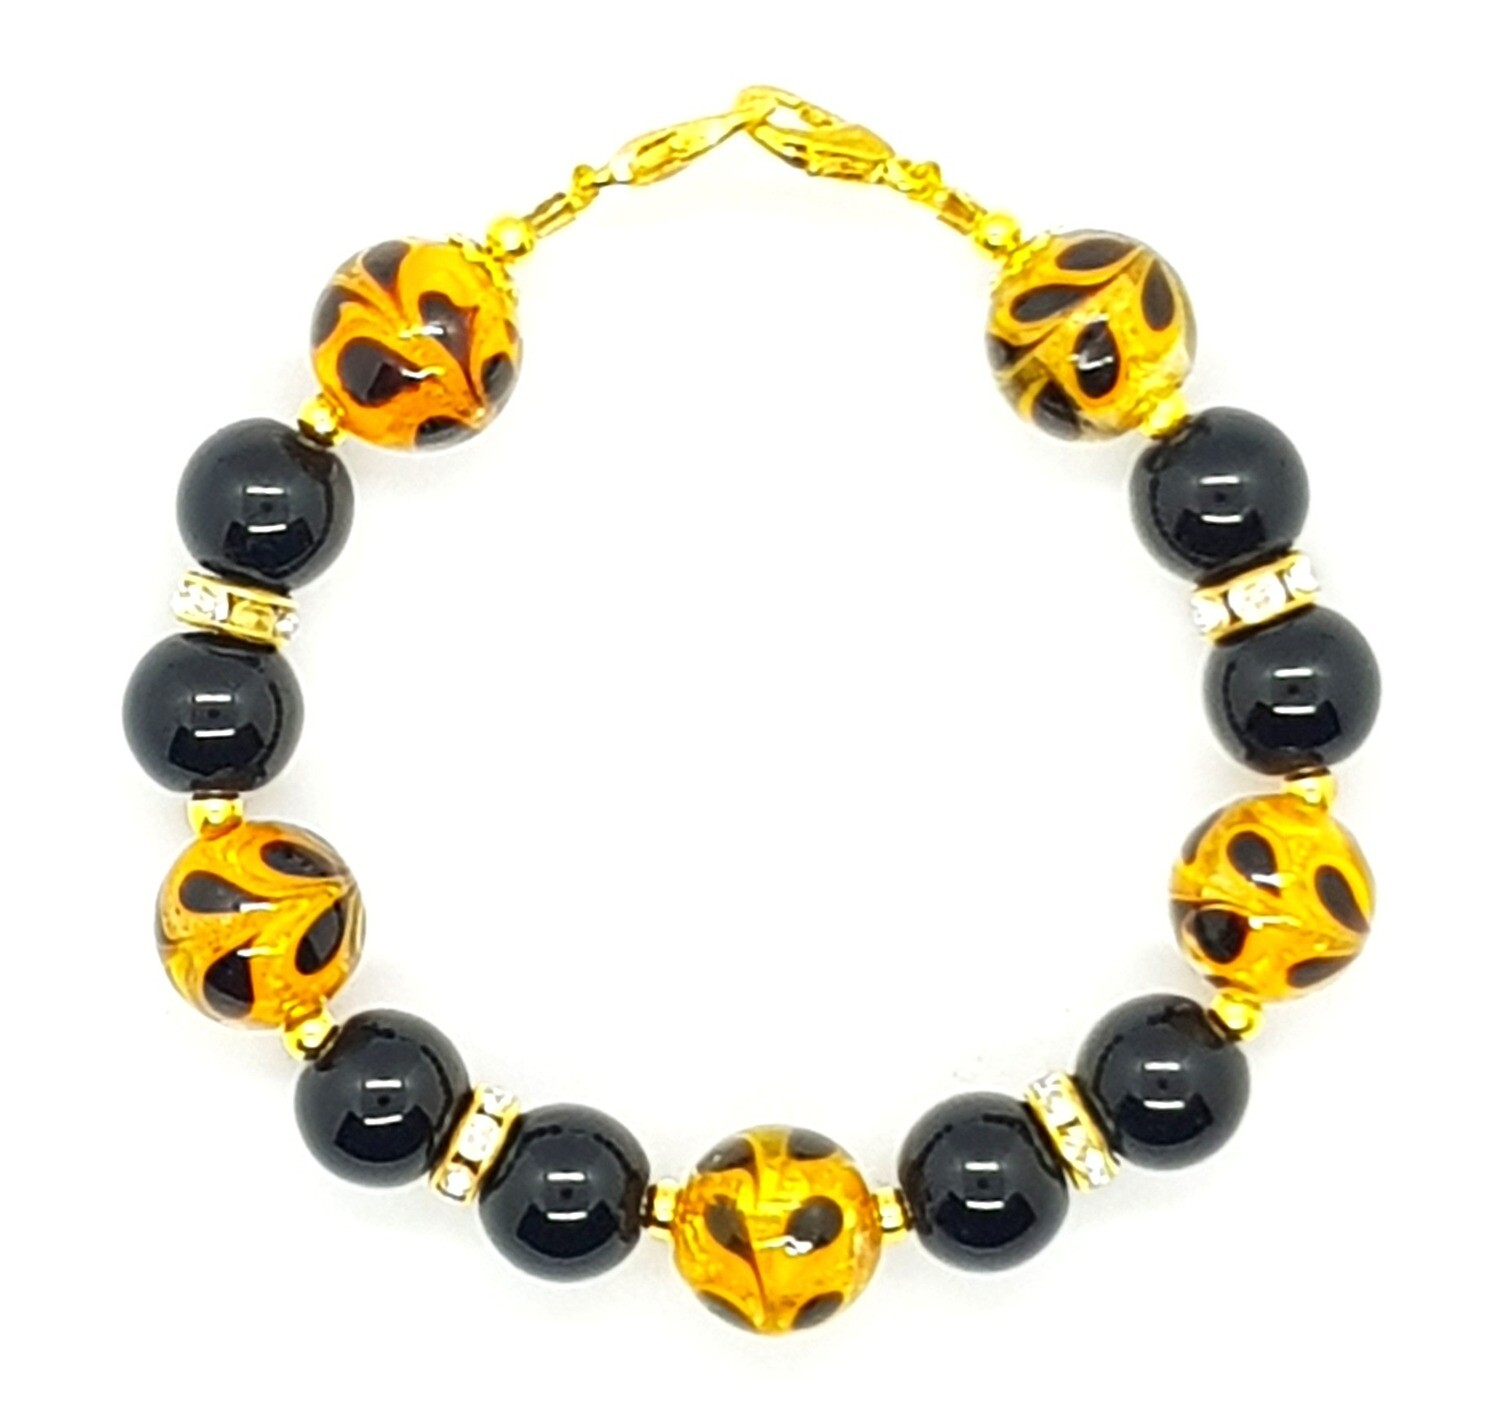 Bracelet & Face Cover Extender Dual Function (Andre - Italy Murano Glass Lampwork Beads 14mm & Black Pearl Beads 10mm)